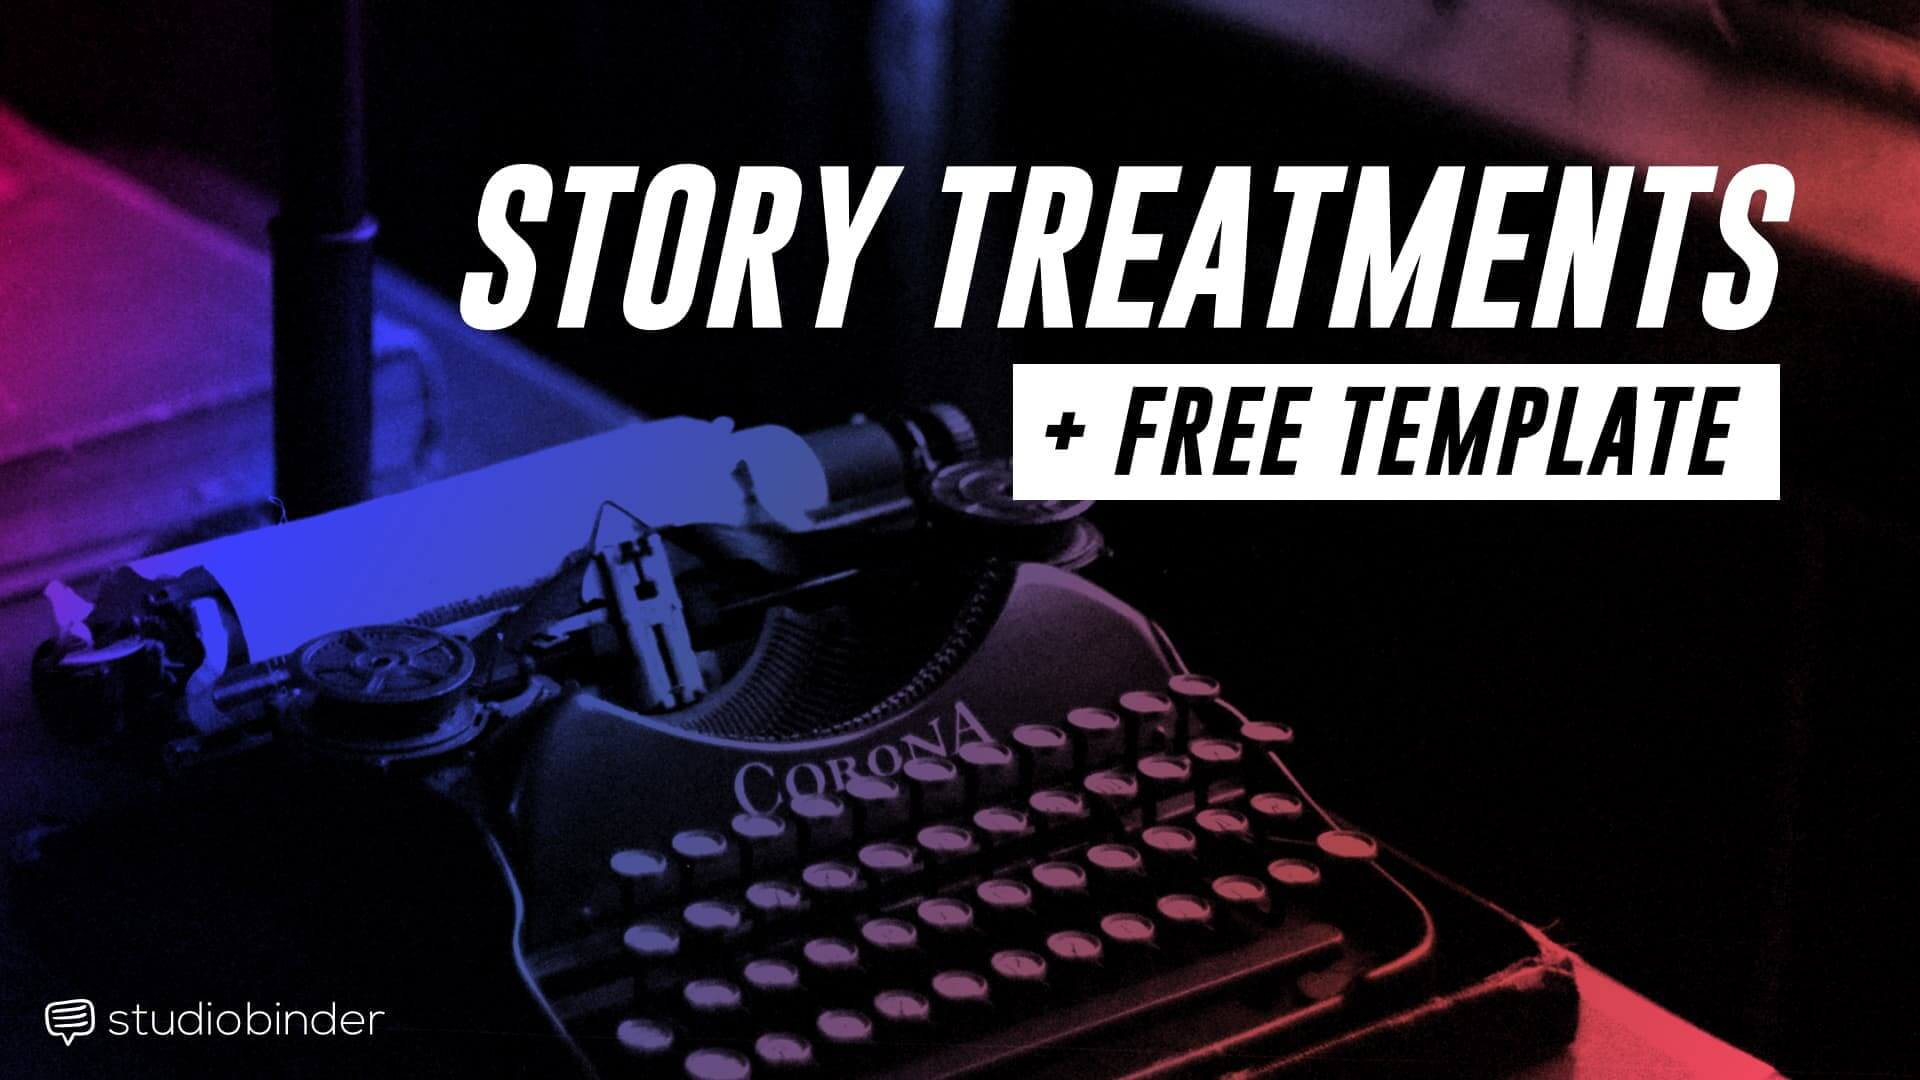 How To Write A Film Treatment With Free Template